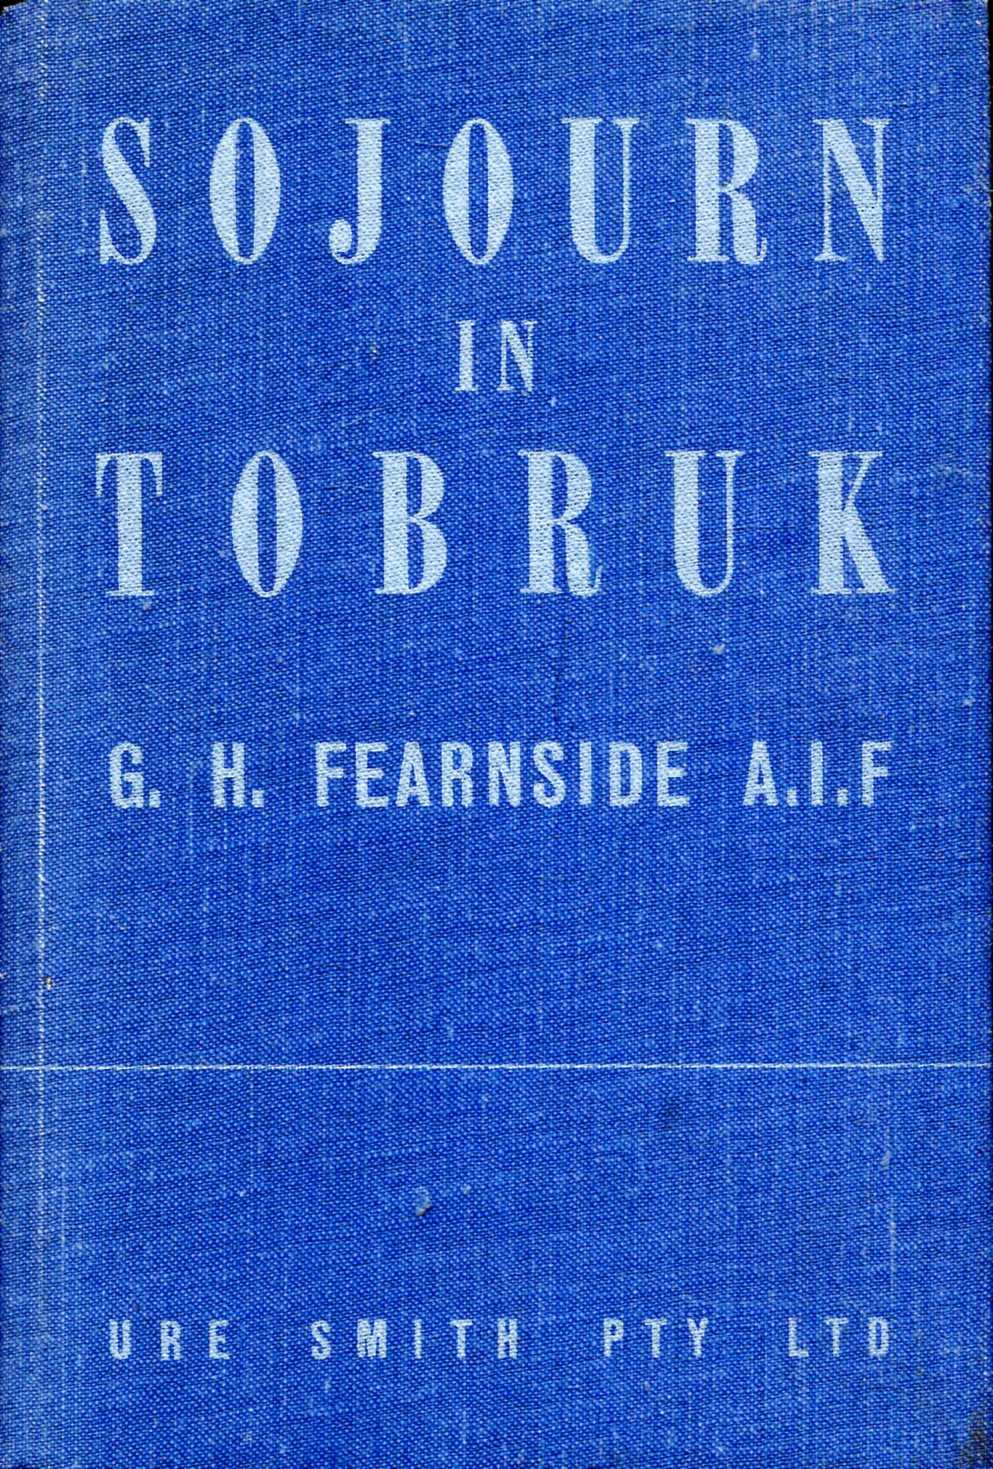 Image for Sojourn in Tobruk